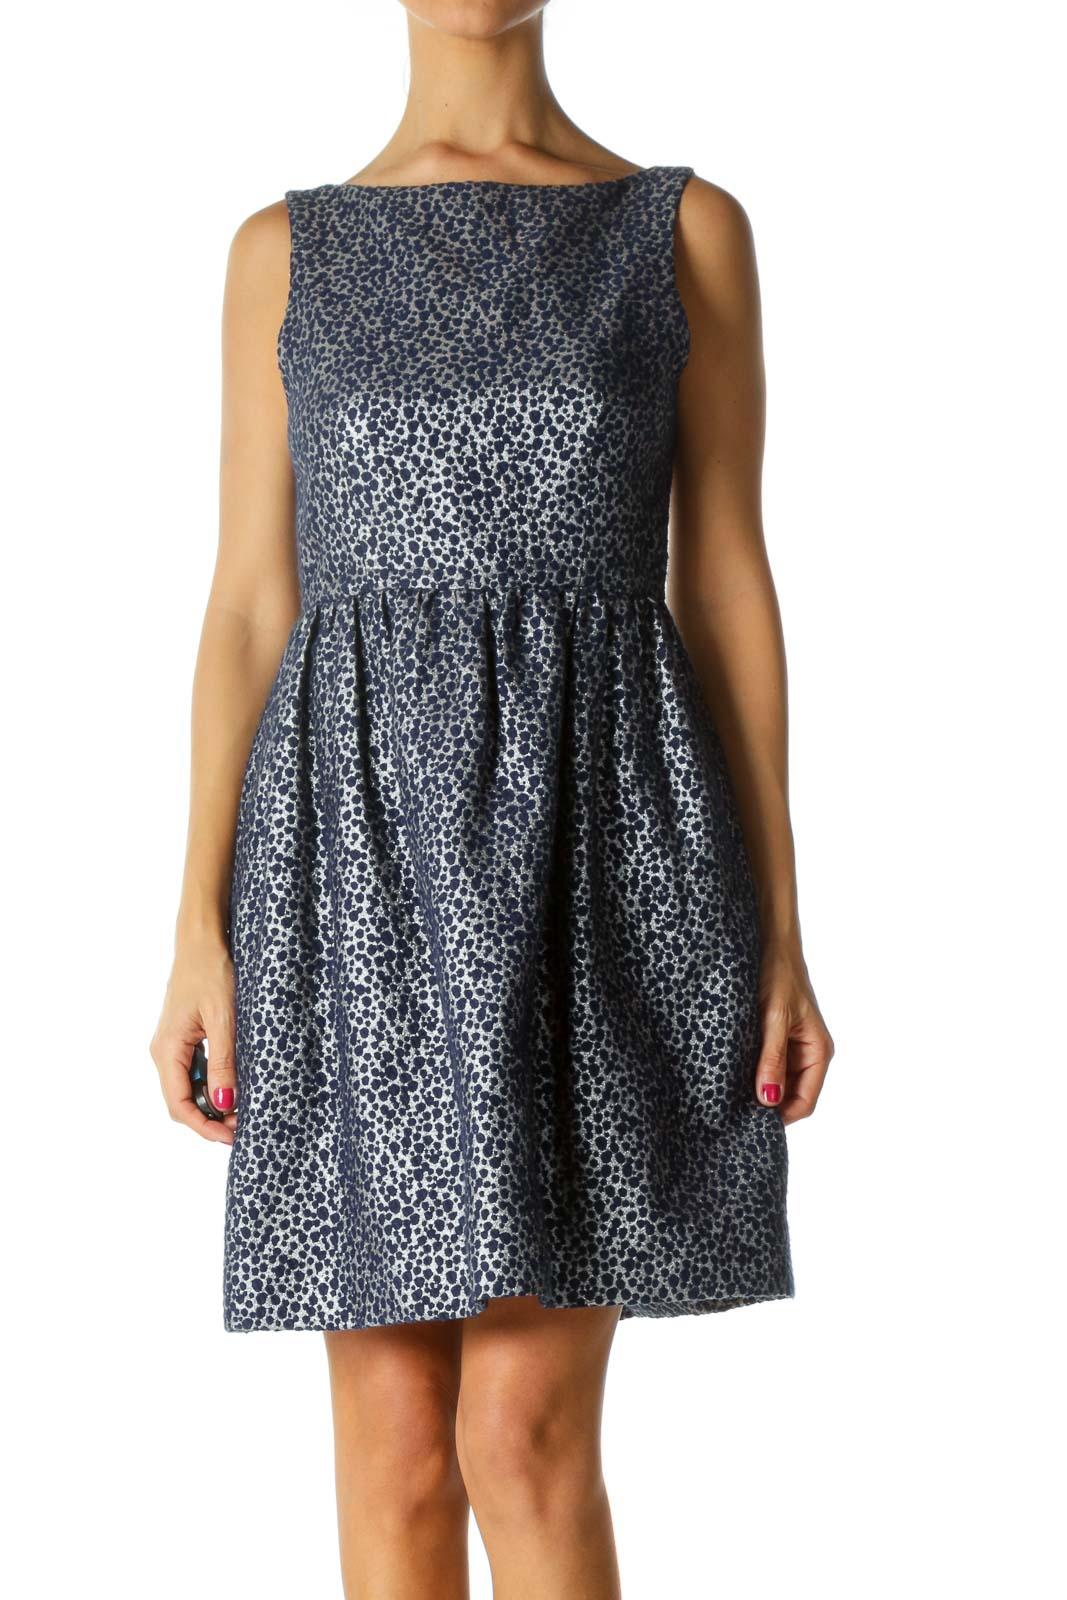 Blue Silver Textured Cinched Waist Dress Front